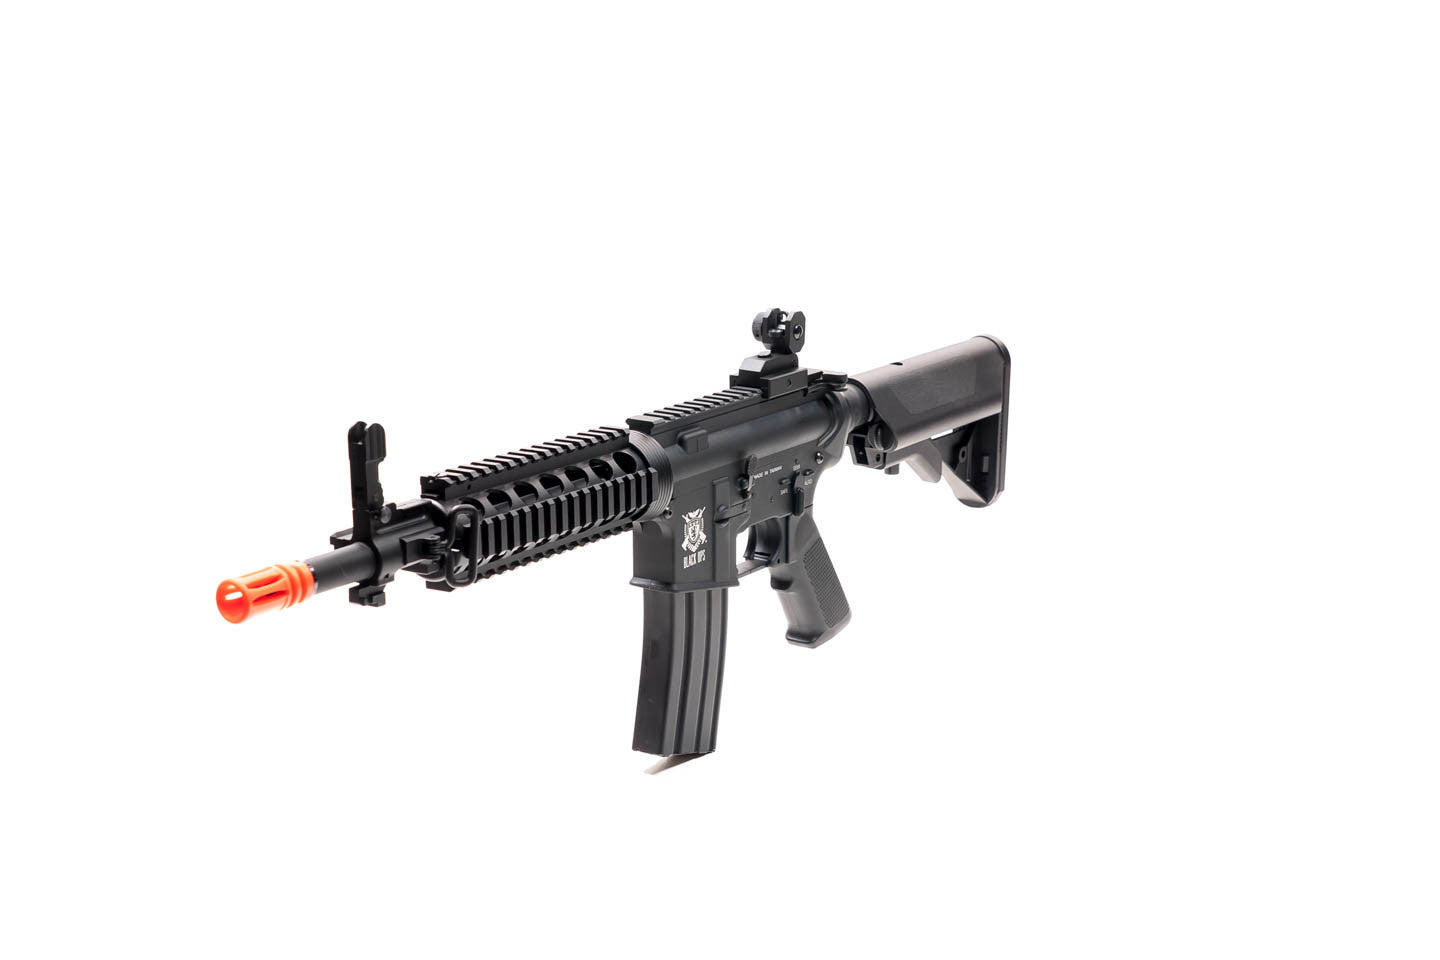 Acr Airsoft Gun airsoft guns, pistols and rifles from black ops usa